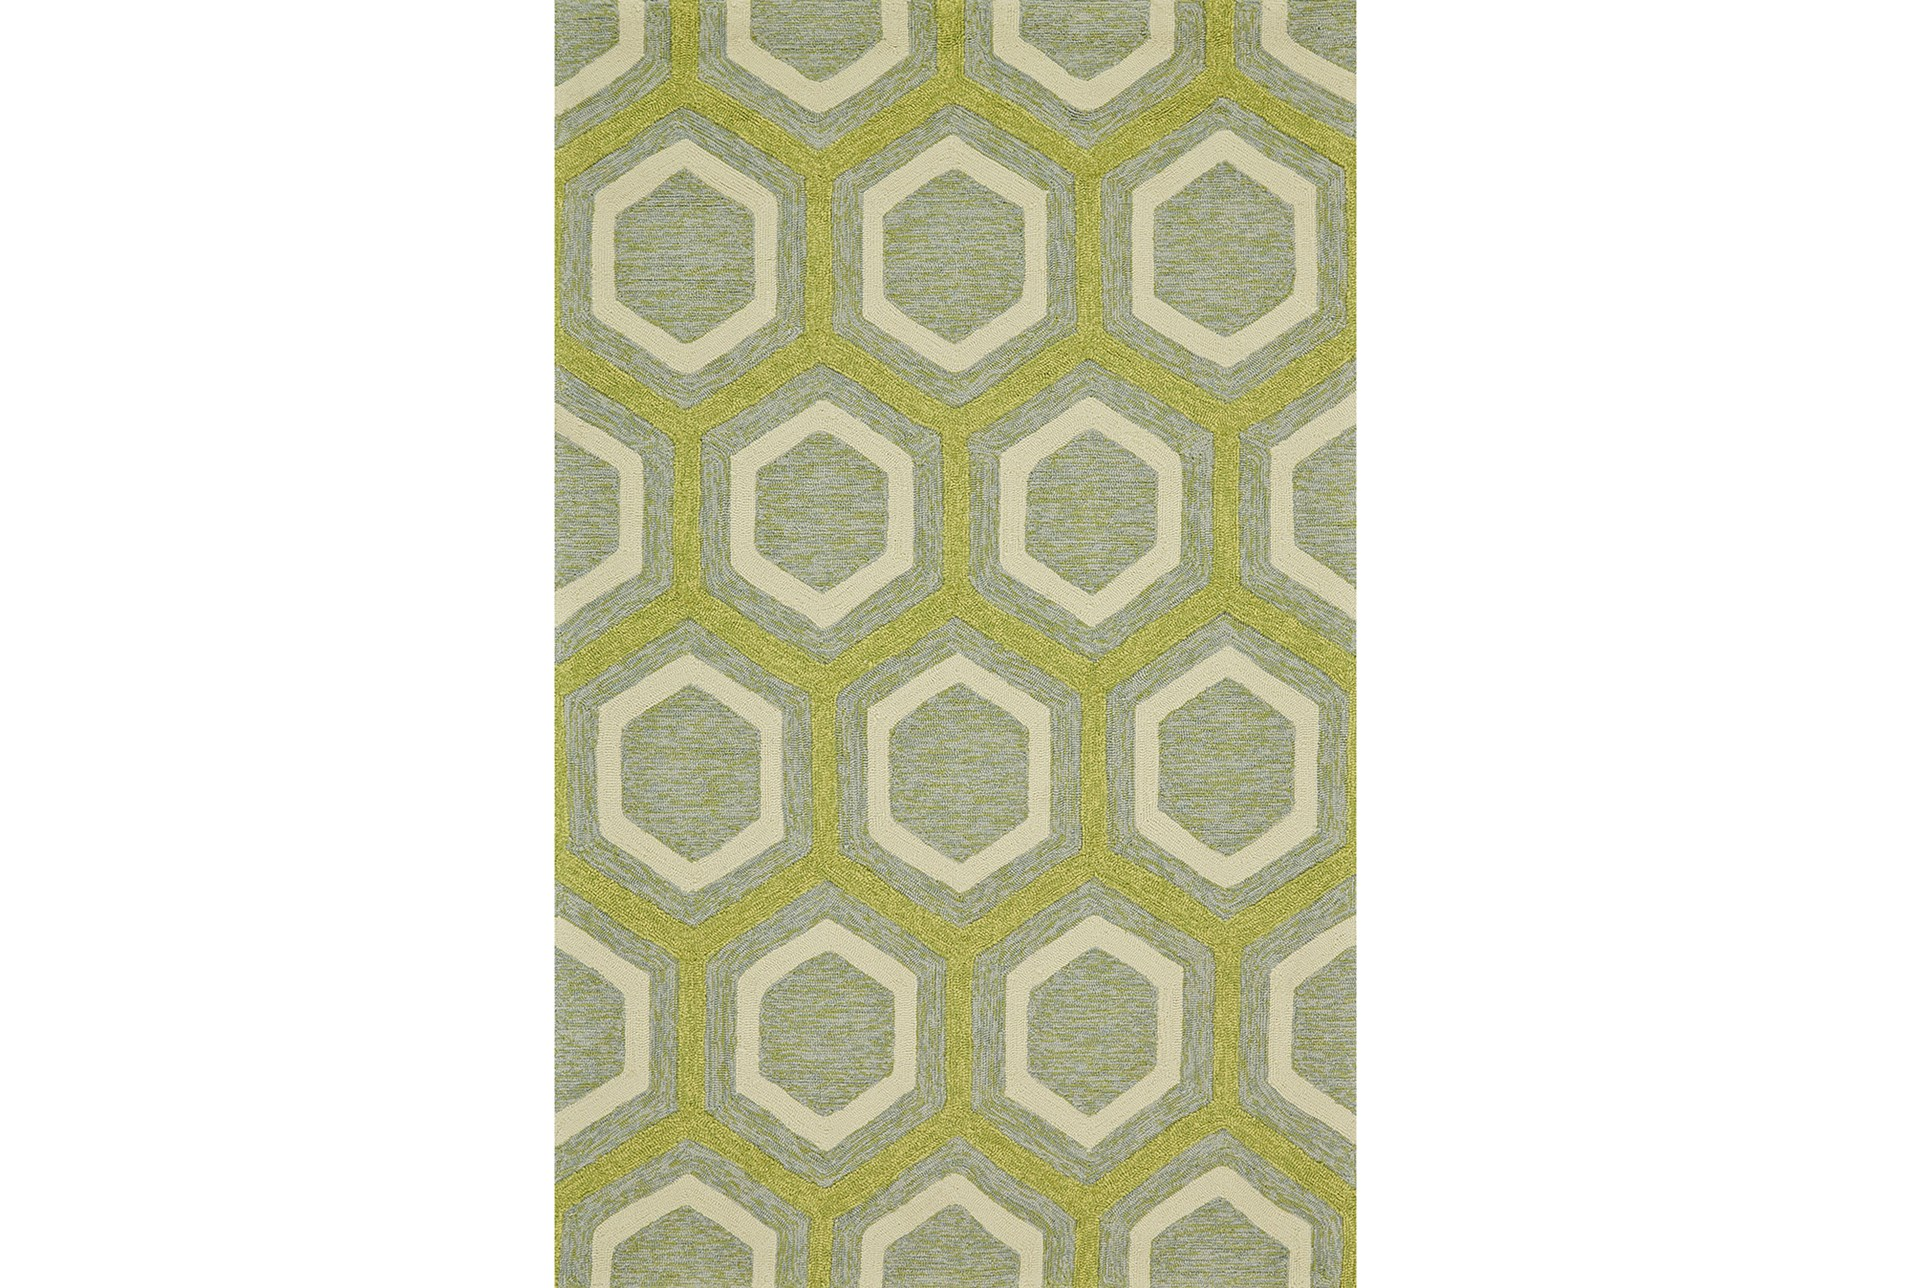 24x36 Rug Colby Hexagon Living Spaces